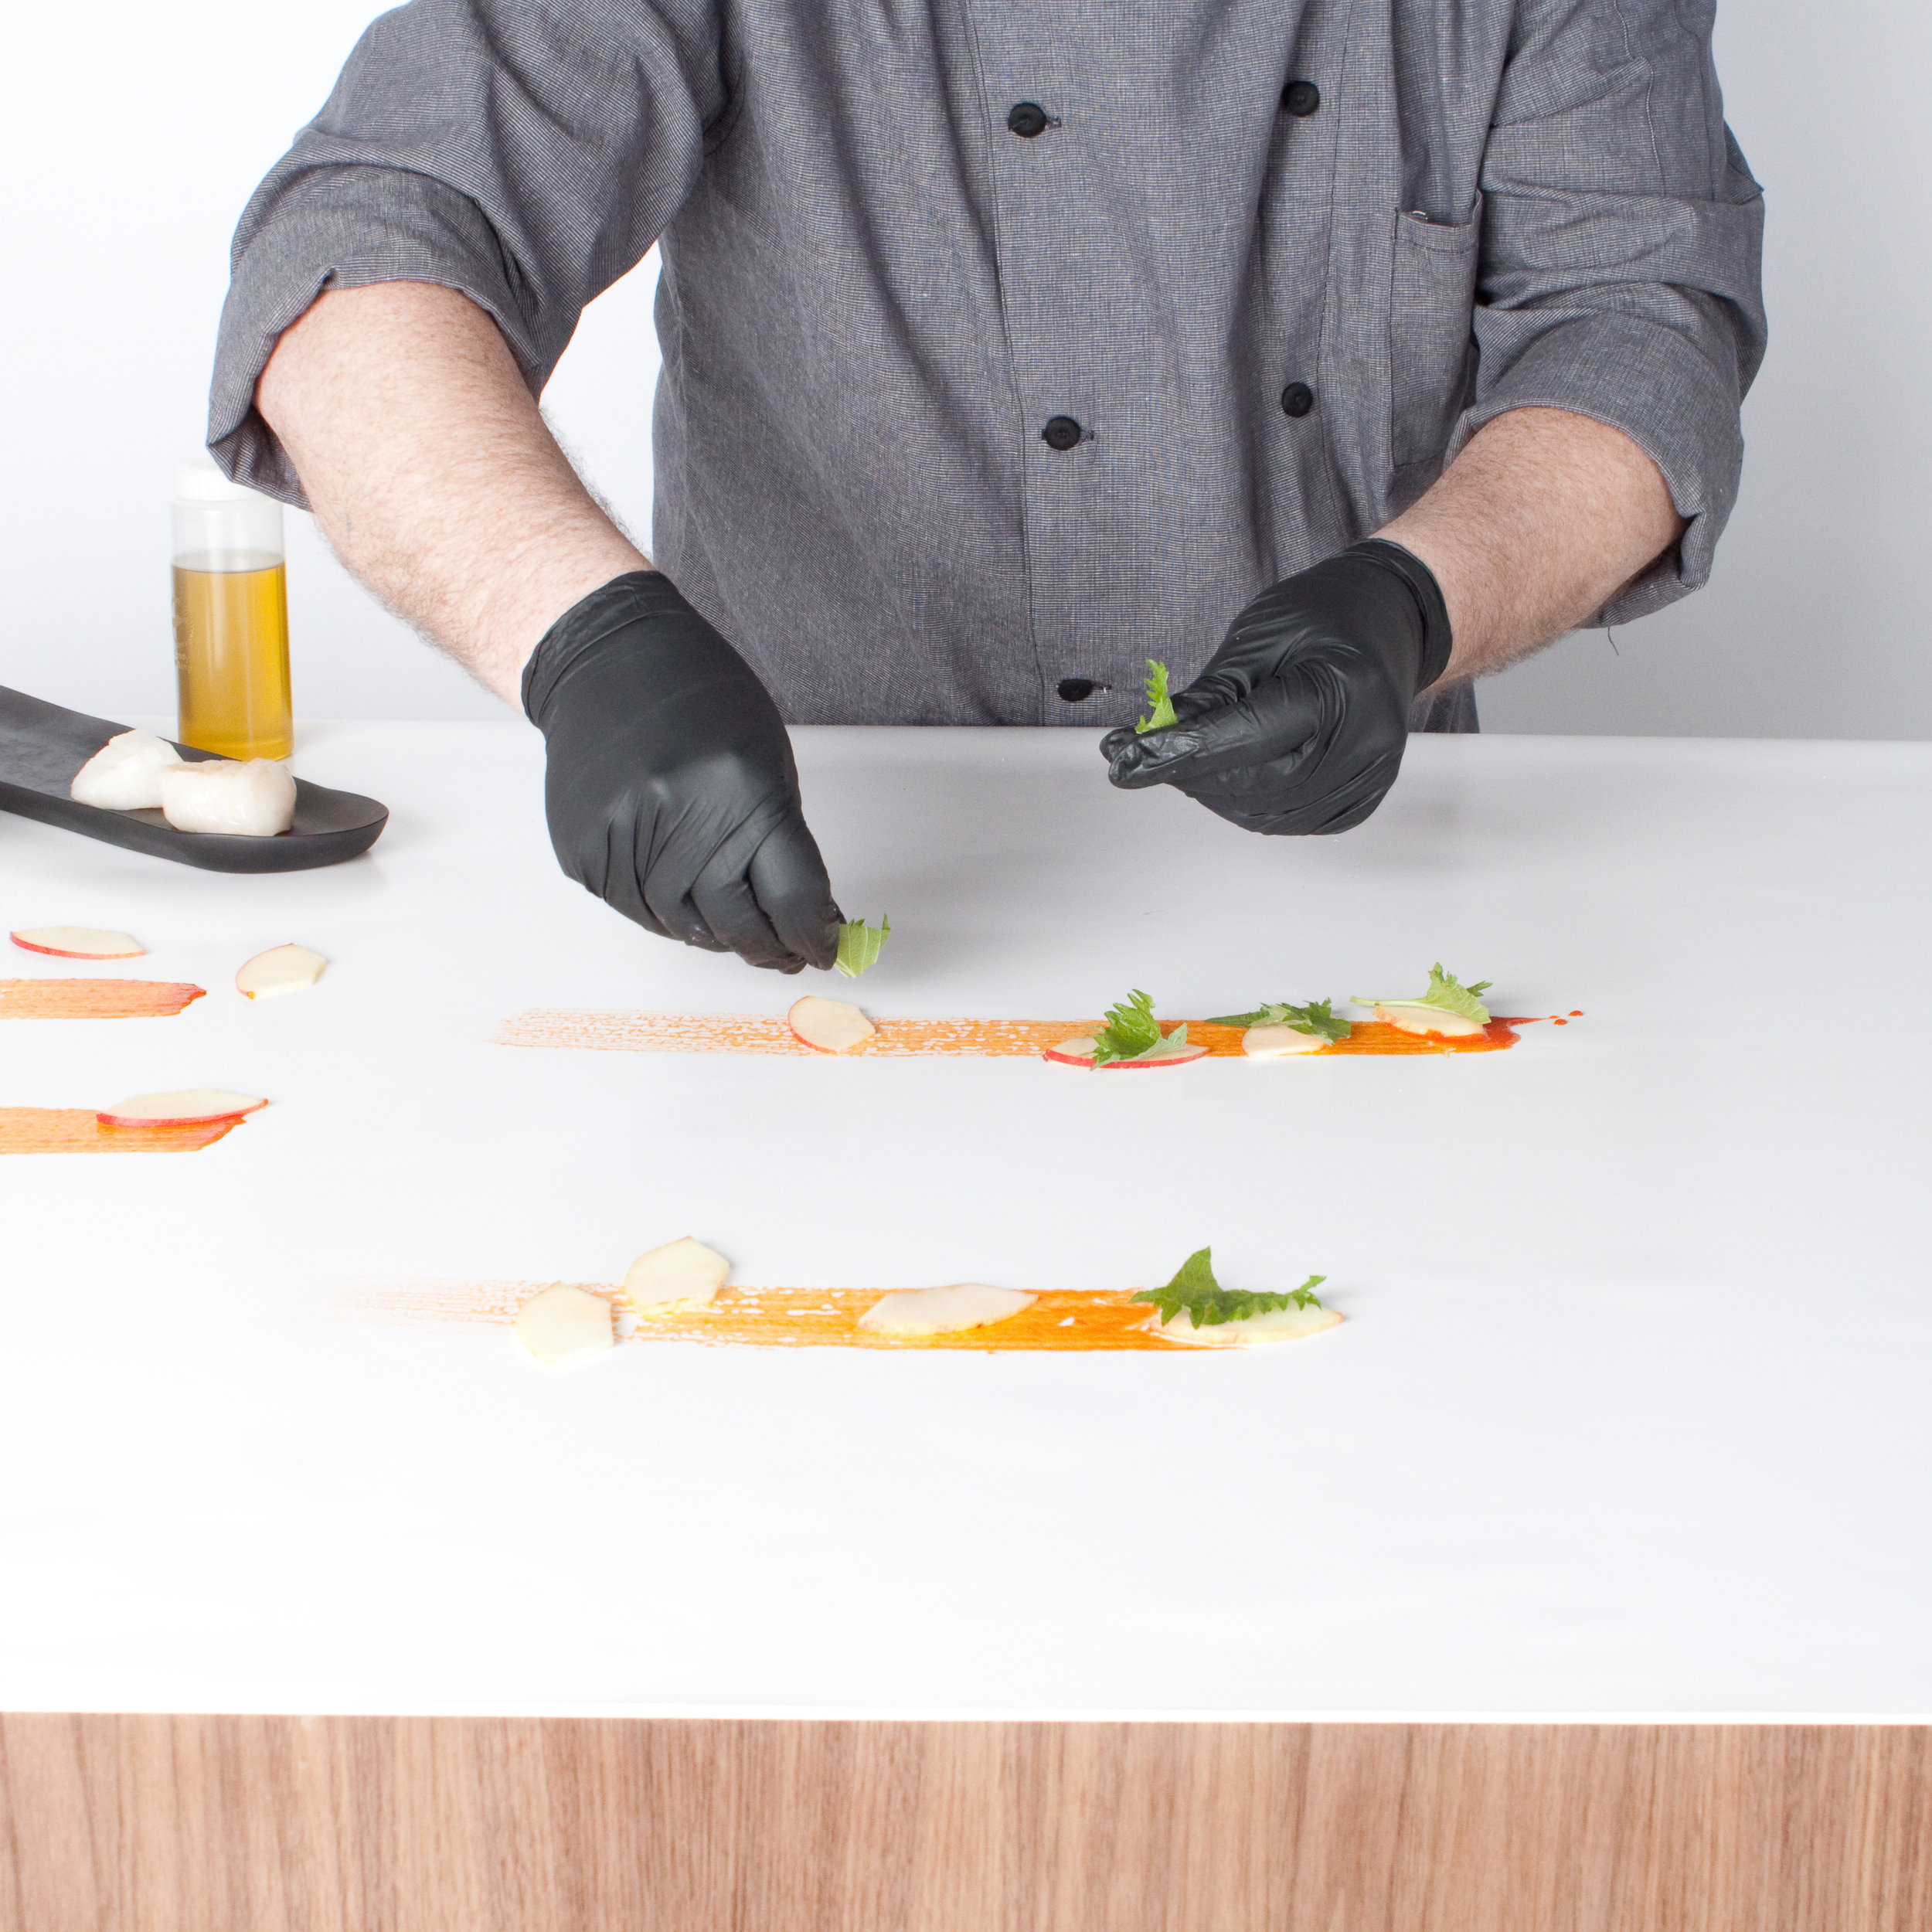 sil·i·cone cloth   1. A reusable, easy to clean and eco-friendly tablecloth used for chef's table.